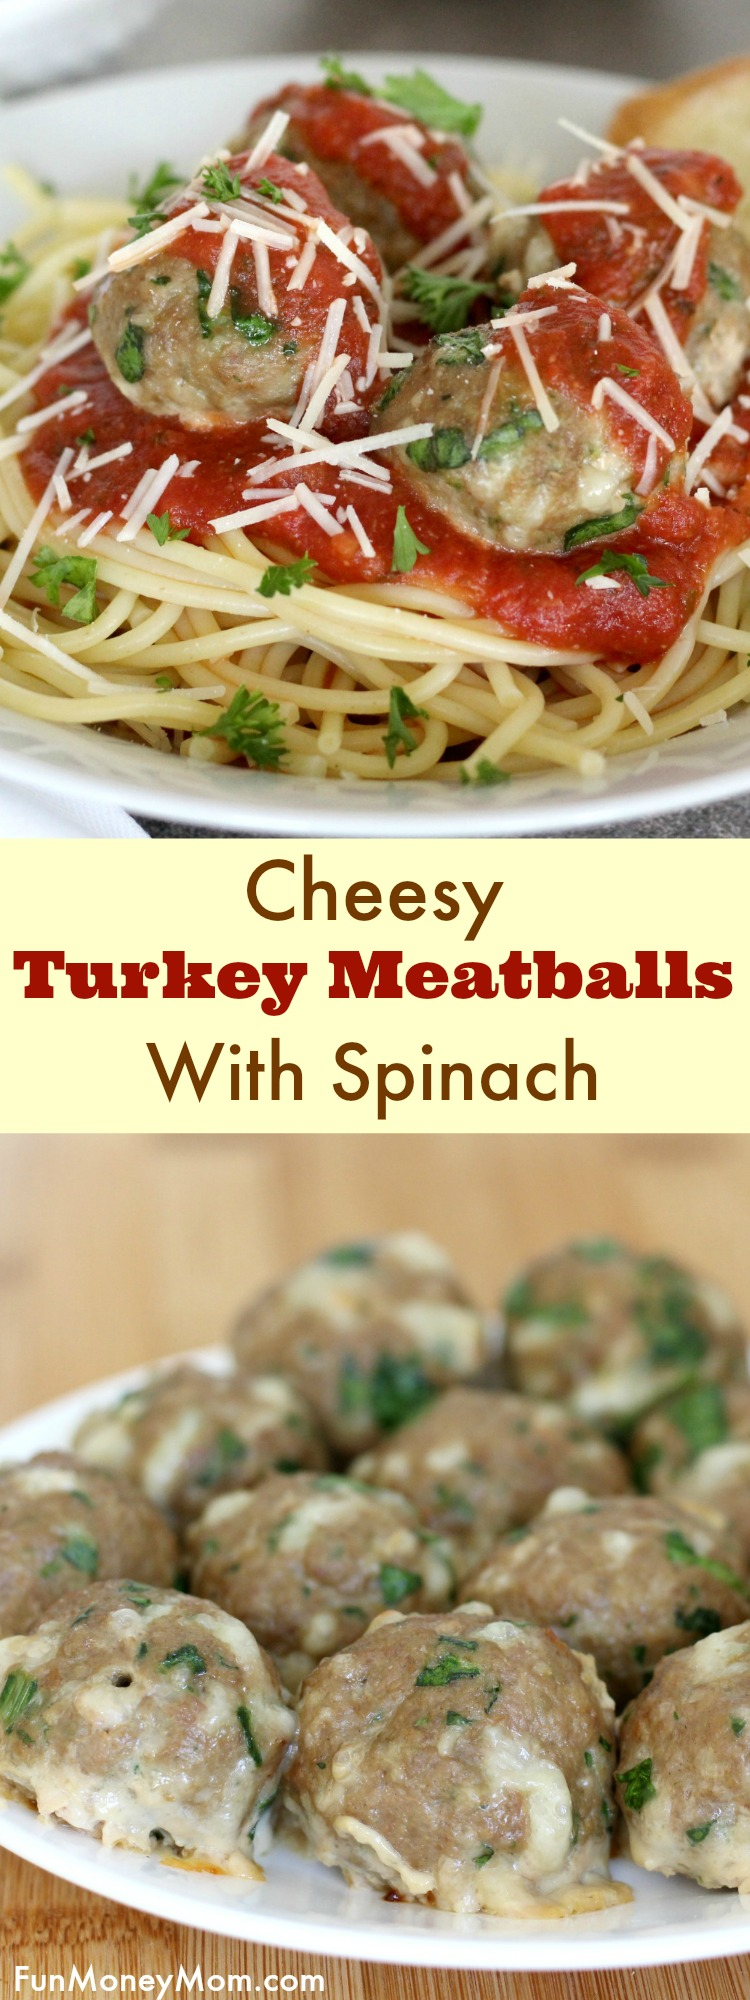 Want your kids to eat their veggies? Try this easy recipe for cheesy meatballs with spinach. They'll be begging you to make this delicious pasta for dinner every night!